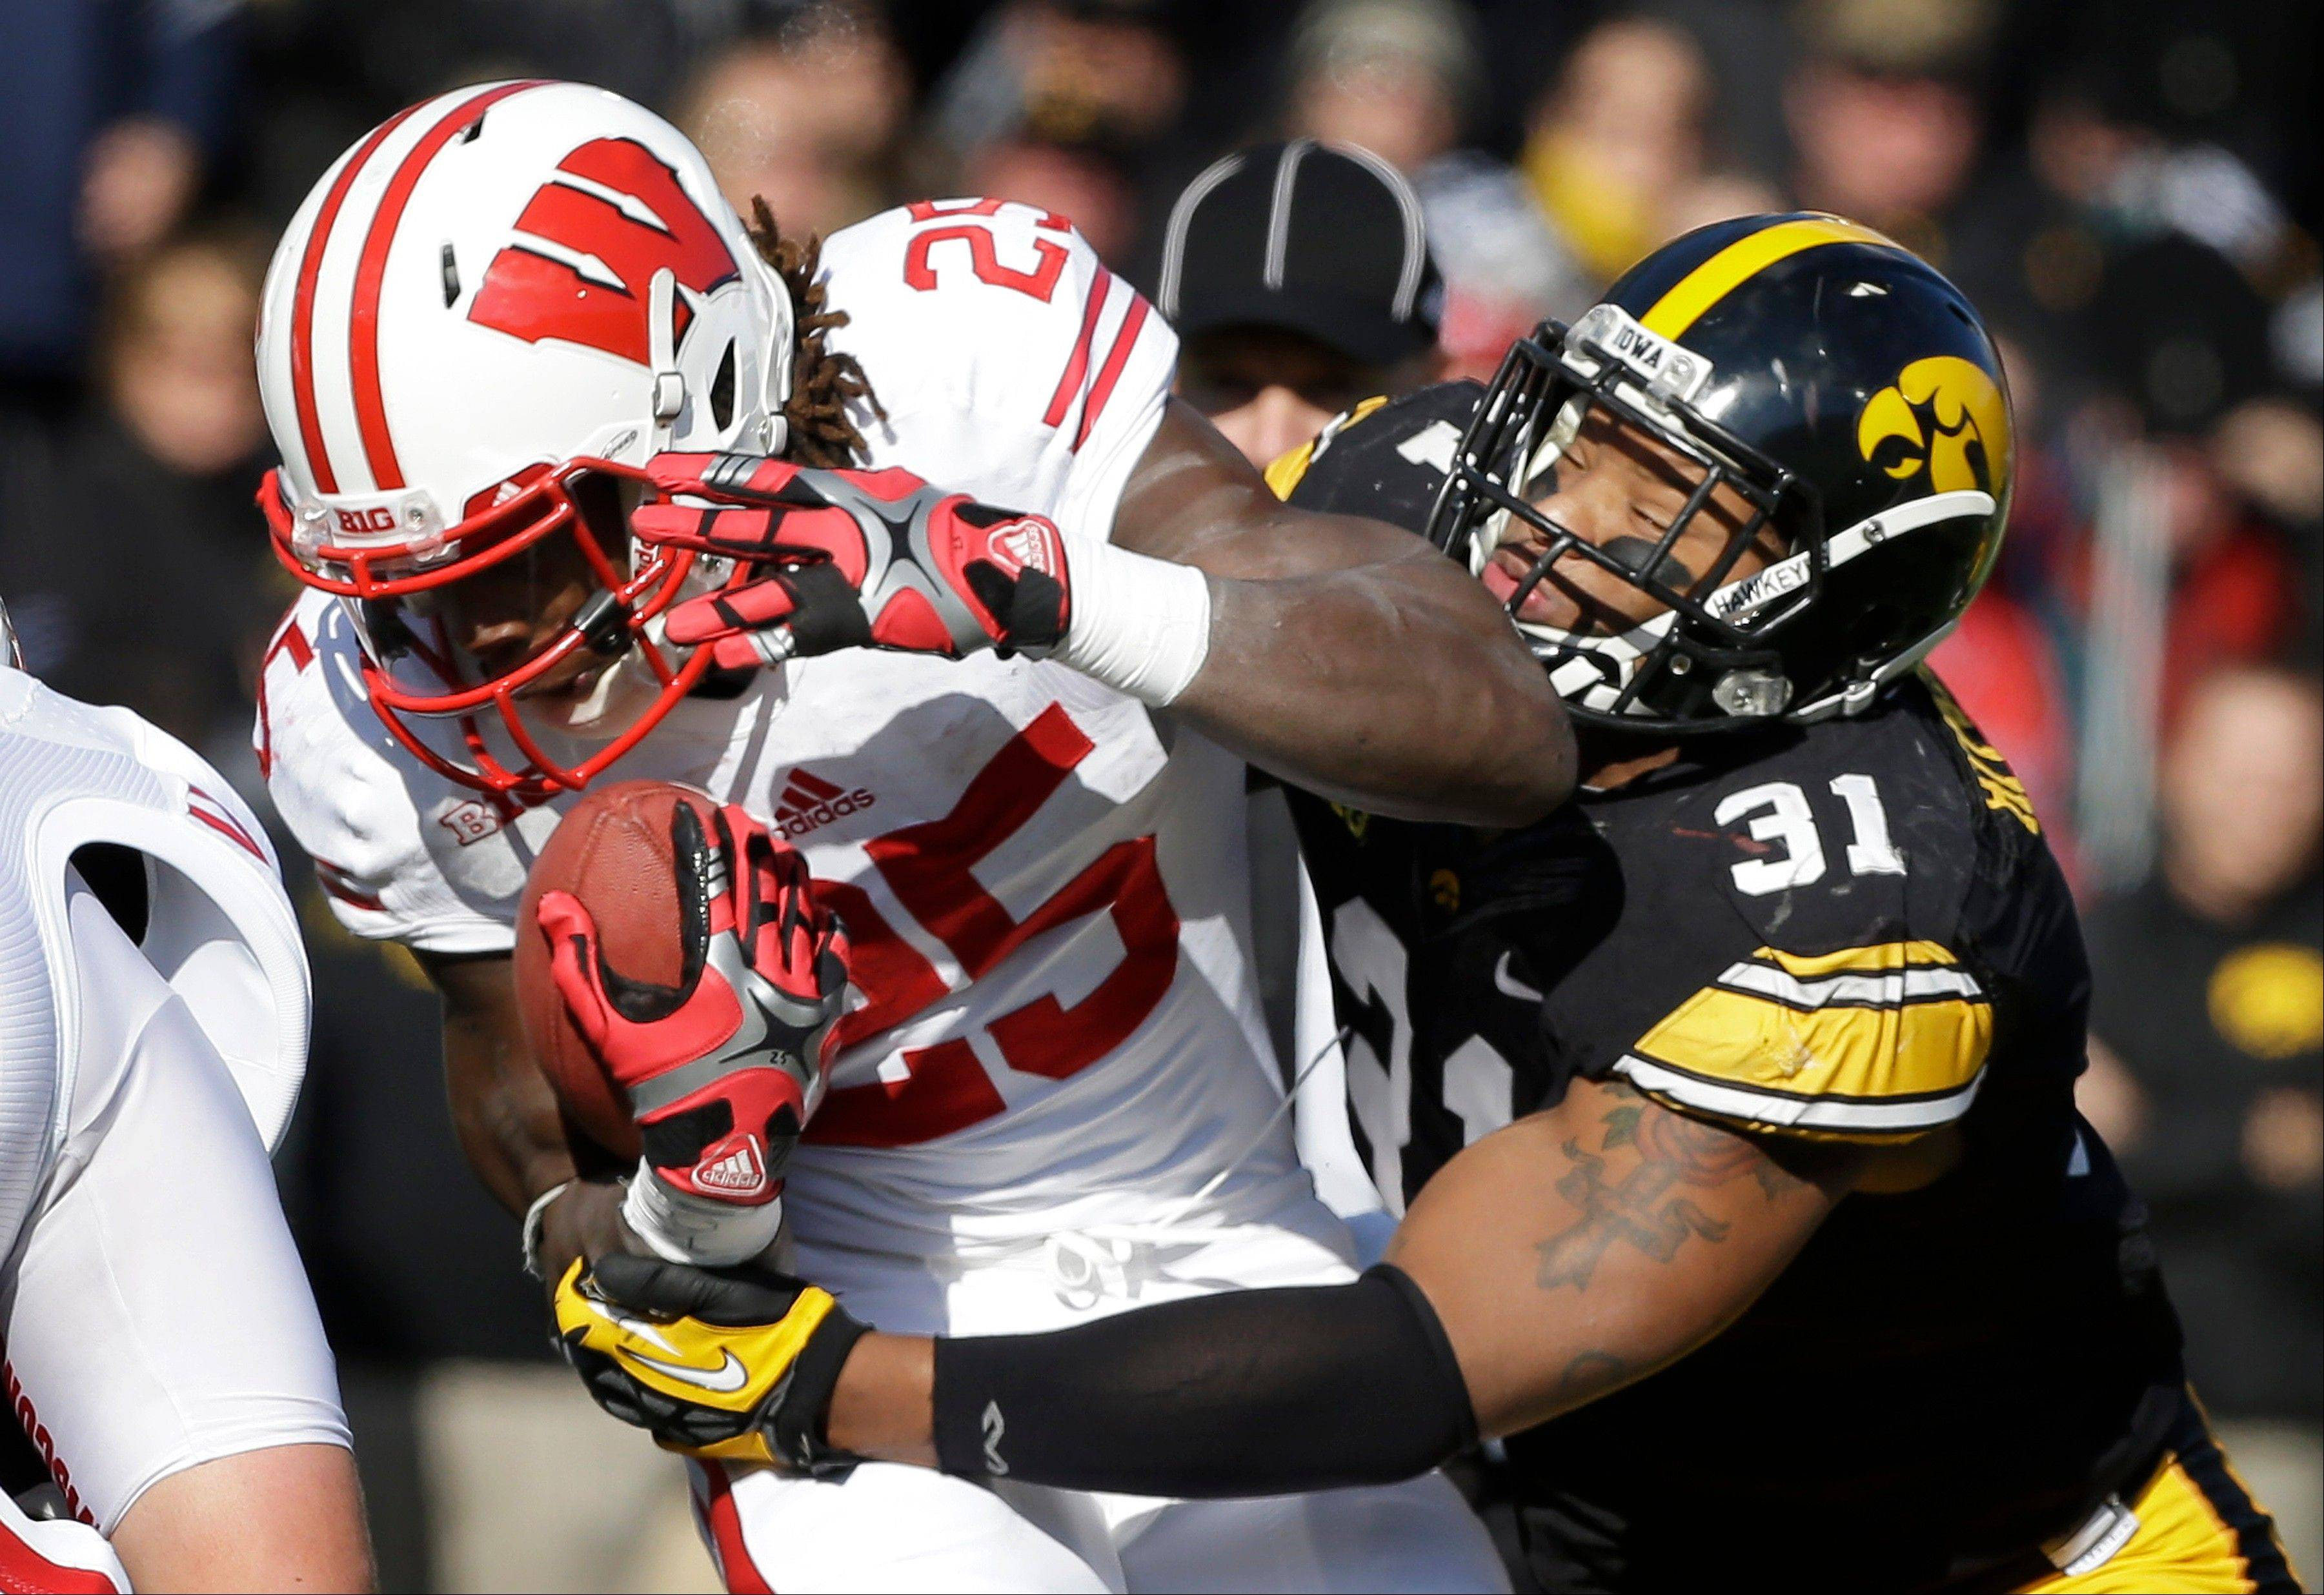 Iowa linebacker Anthony Hitchens (31) tackles Wisconsin running back Melvin Gordon during the first half.